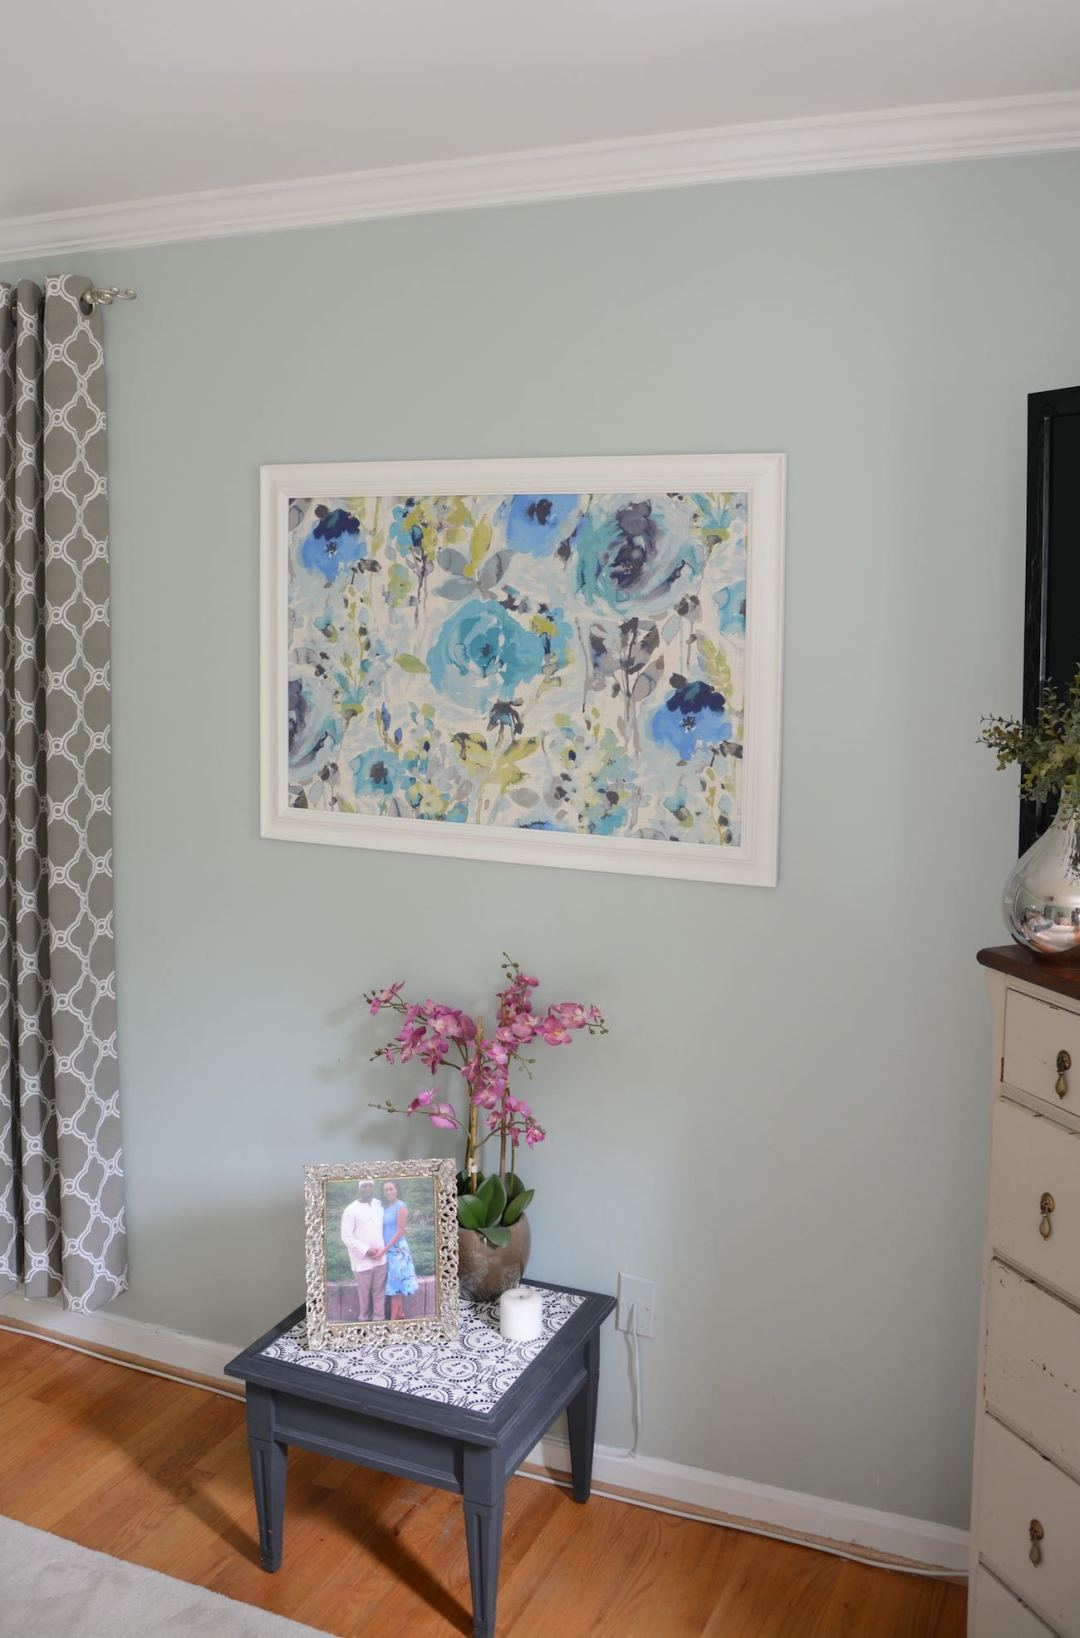 Framed fabric hung on the wall